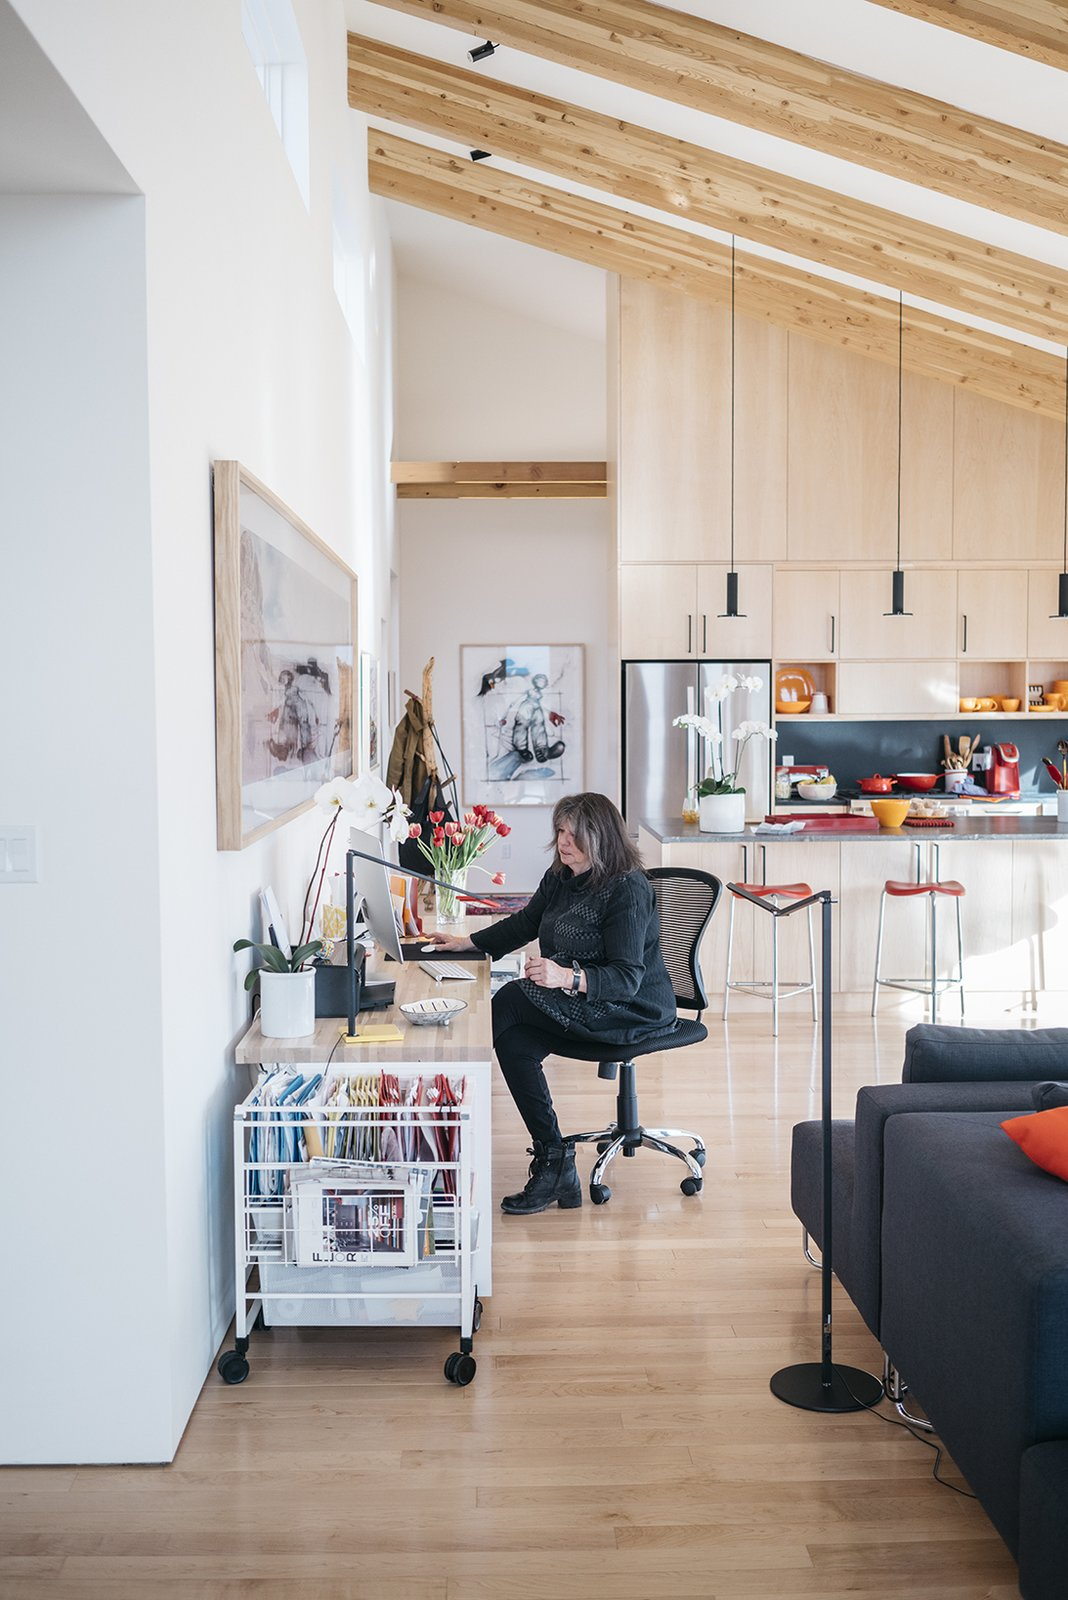 Office, Craft Room Room Type, Chair, Desk, Storage, Lamps, and Light Hardwood Floor - Taos, New Mexico Dwell Magazine : July / August 2017  Photo 9 of 11 in A Rookie Designer and Her Builder Father Create an Artist's Sculptural Loft in the Desert